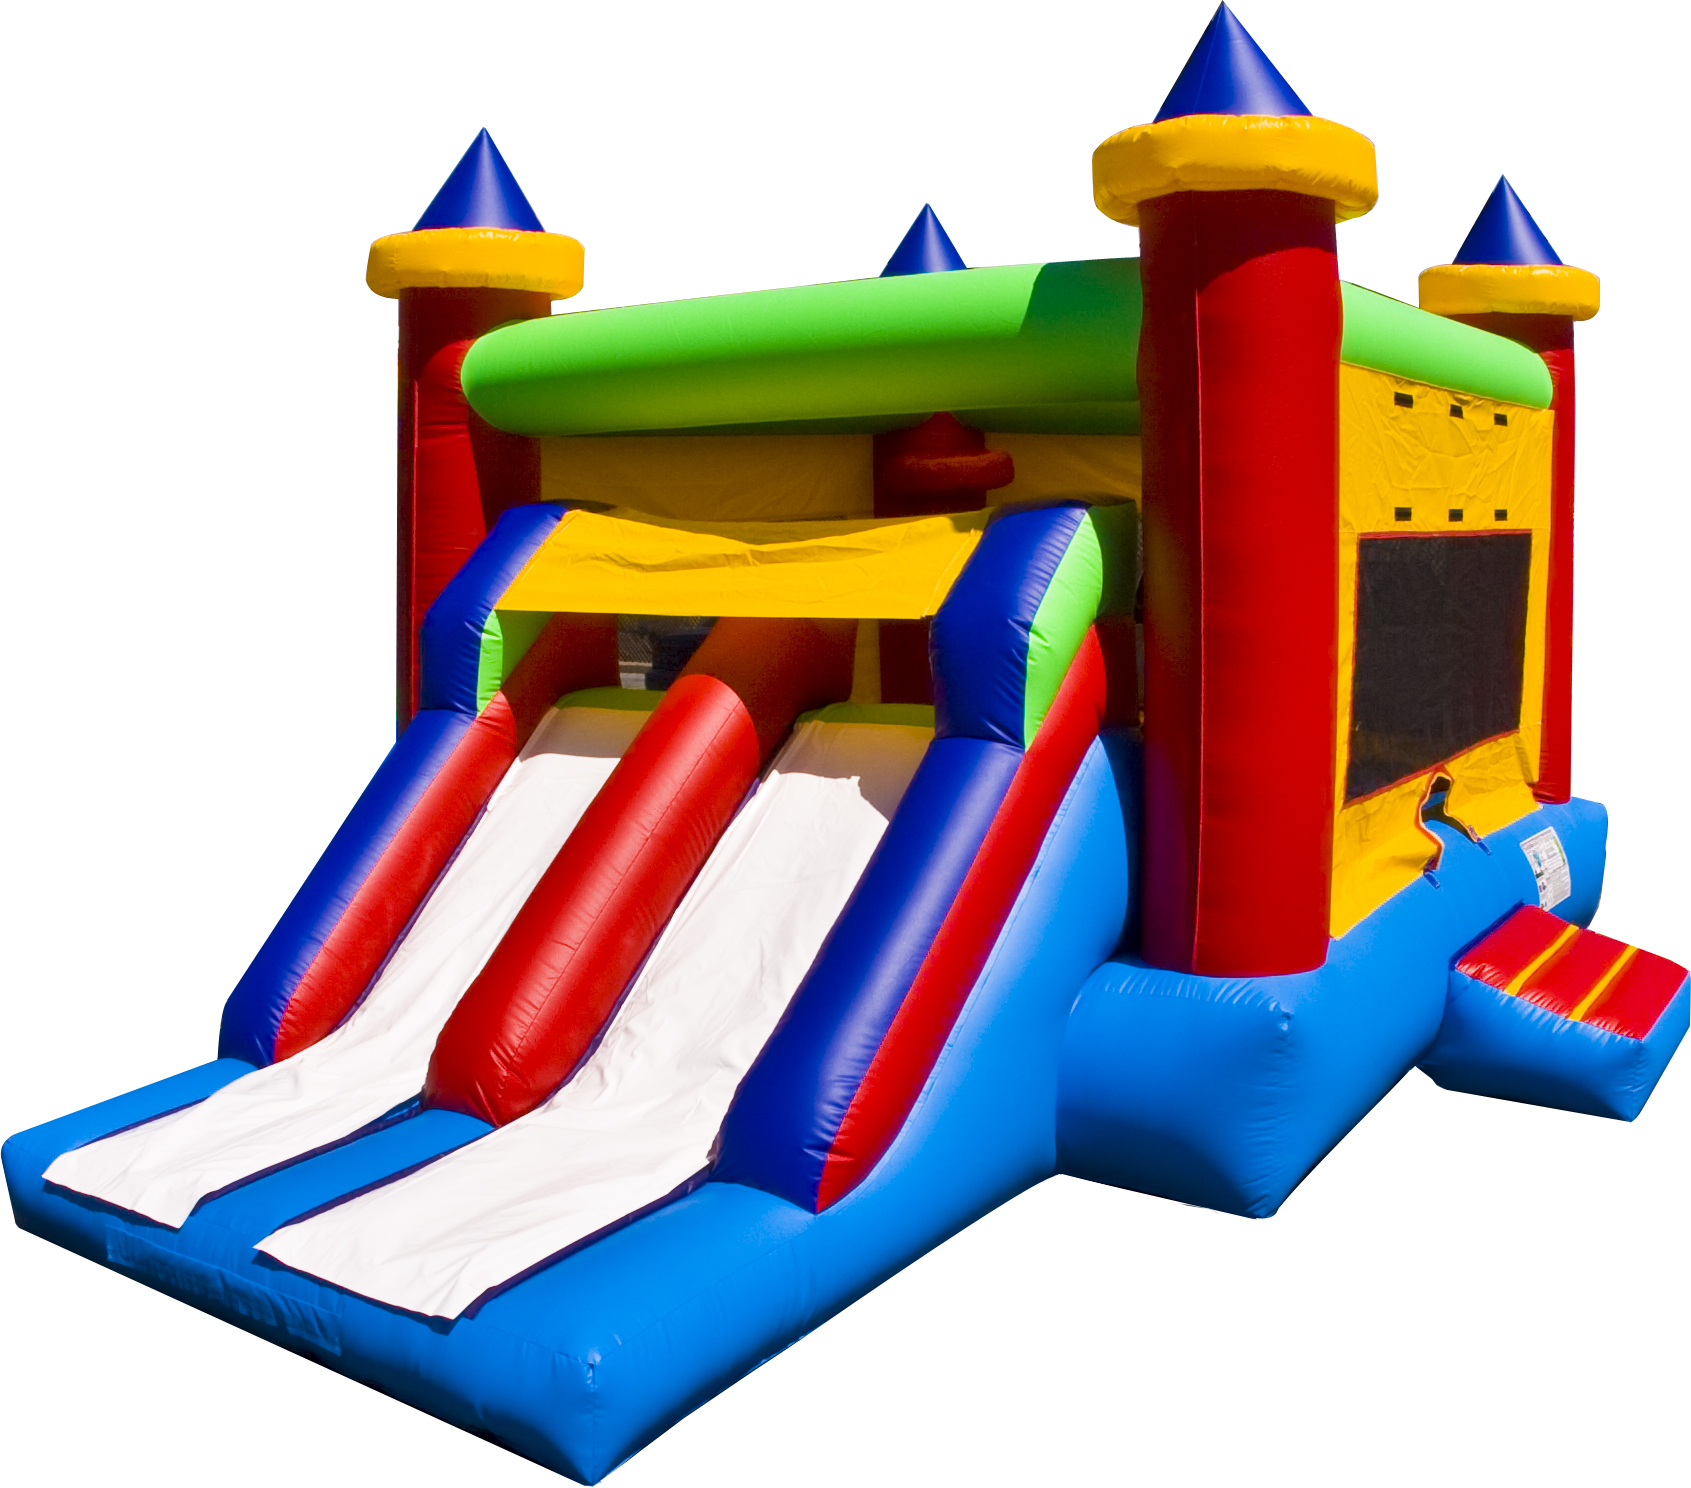 Bounce House Rentals in Stockton.